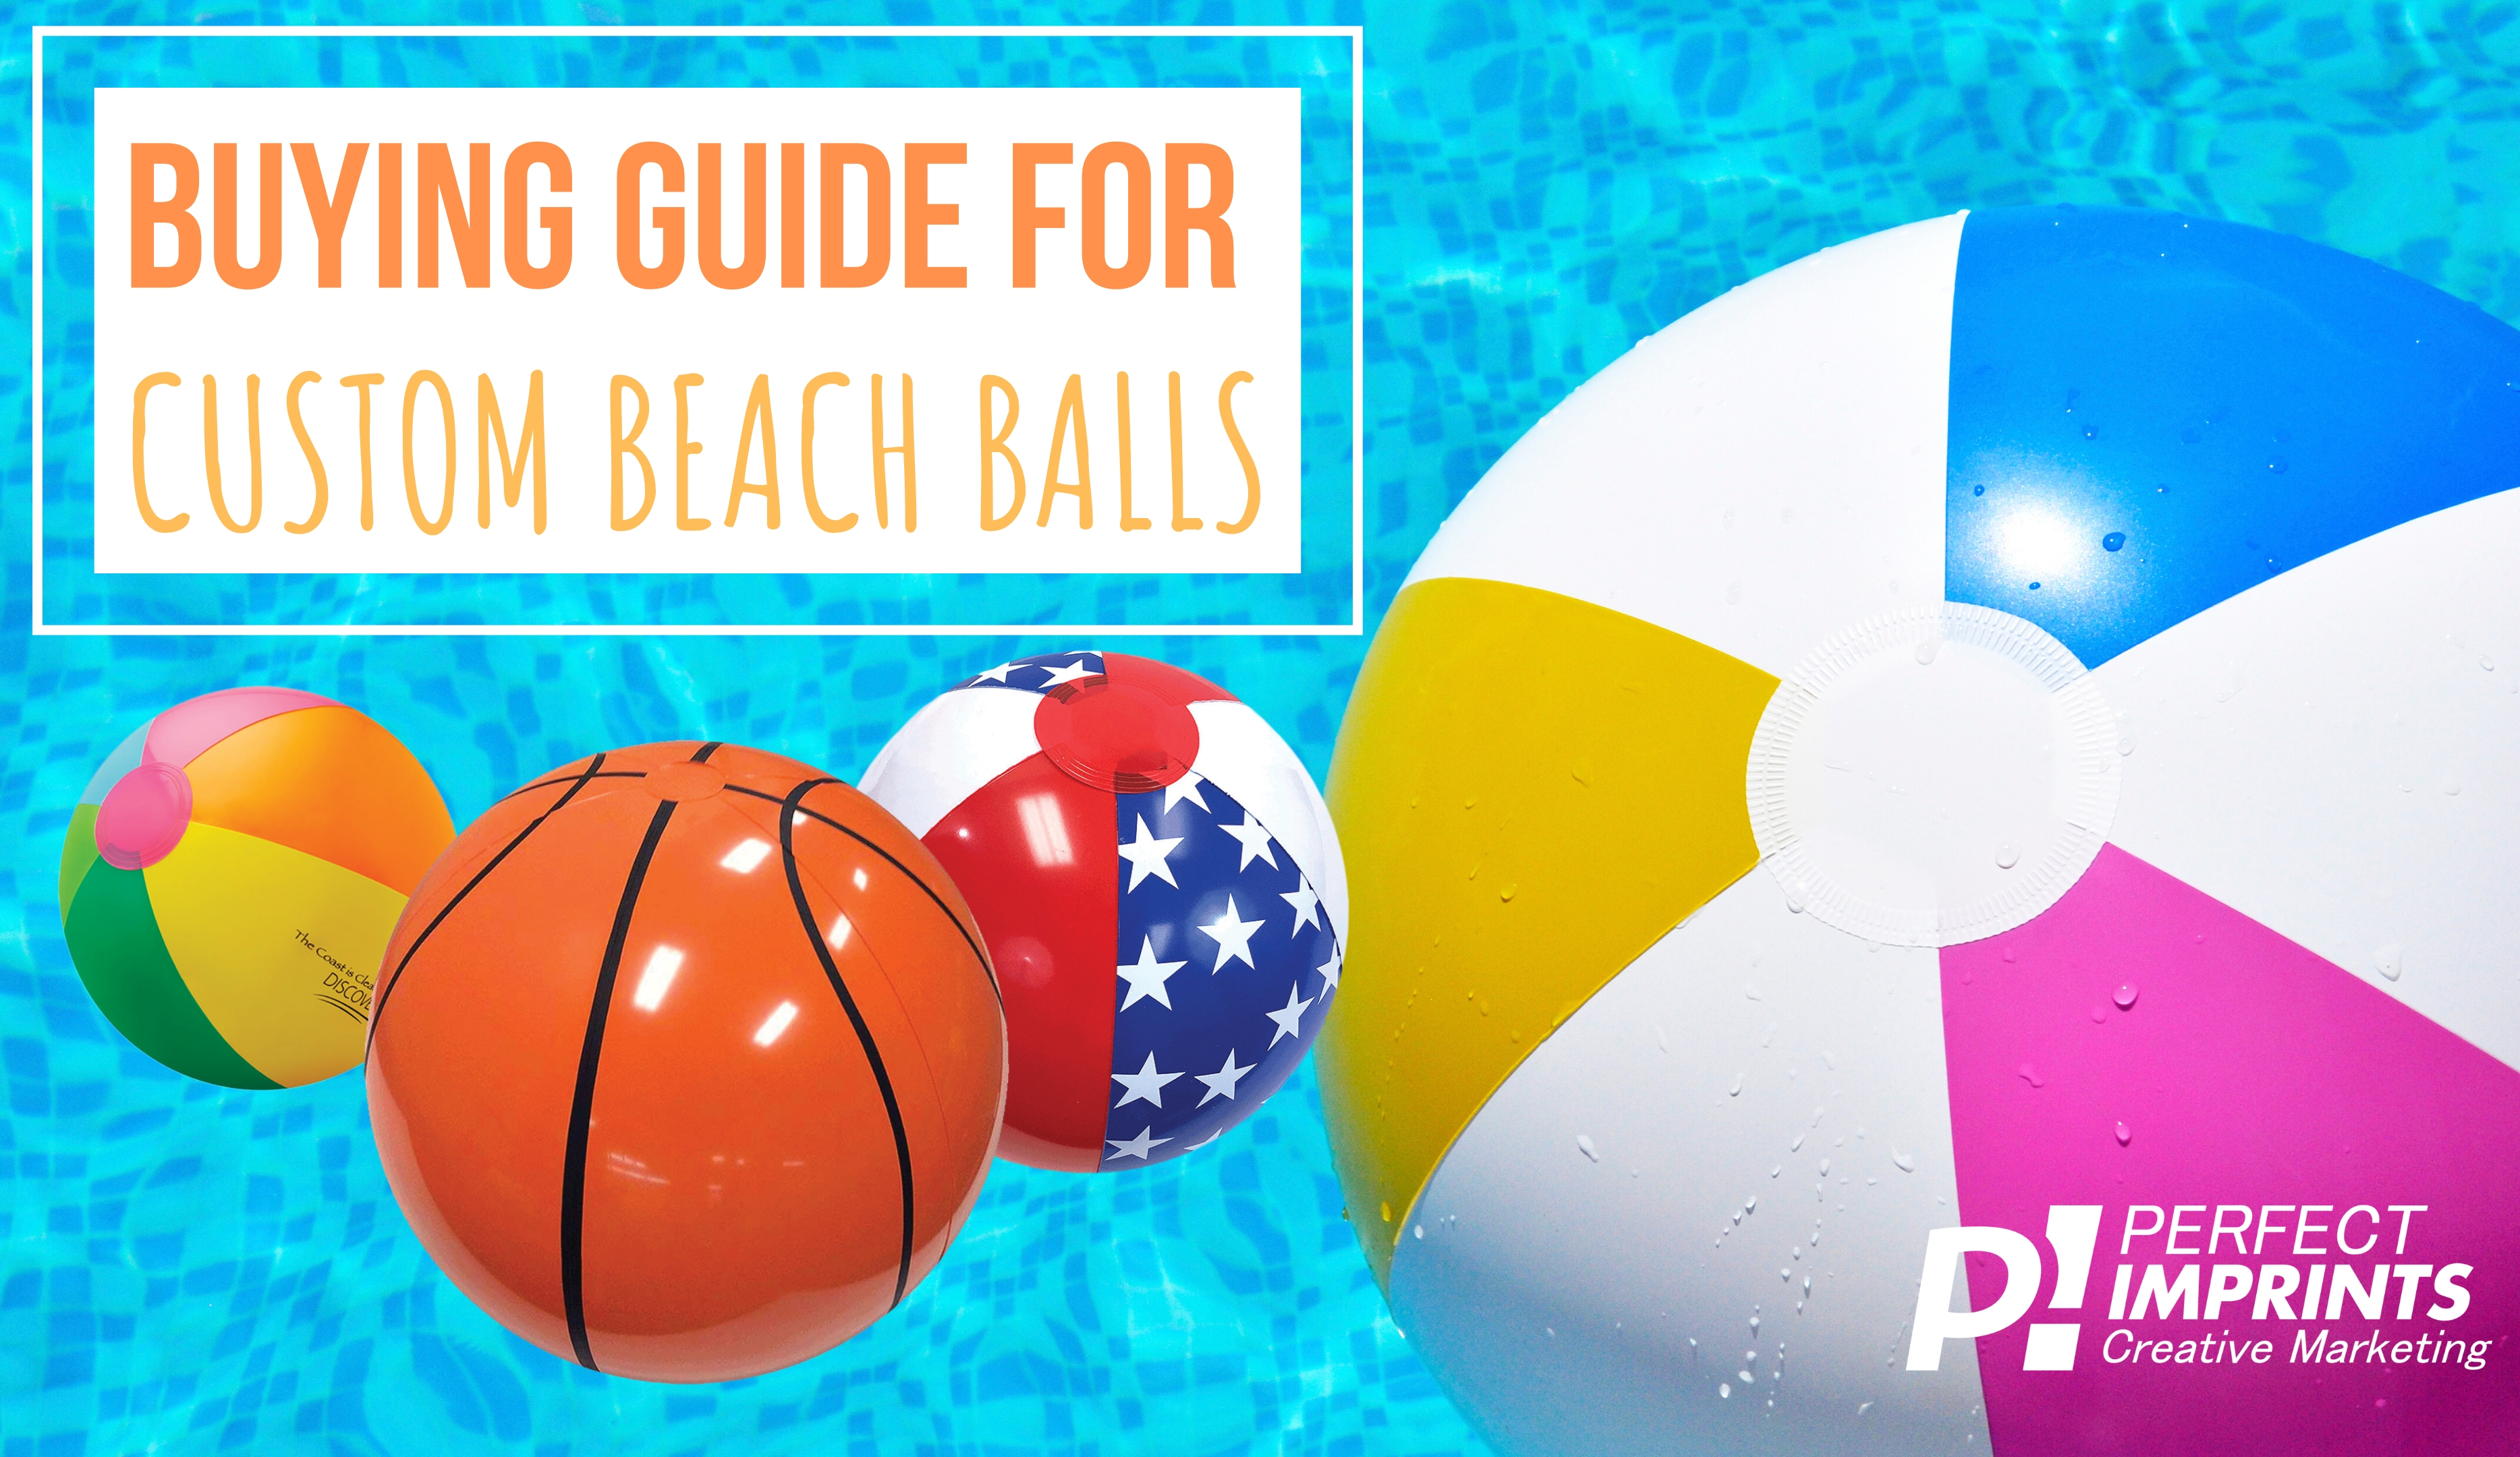 Buying Guide for Custom Beach Balls